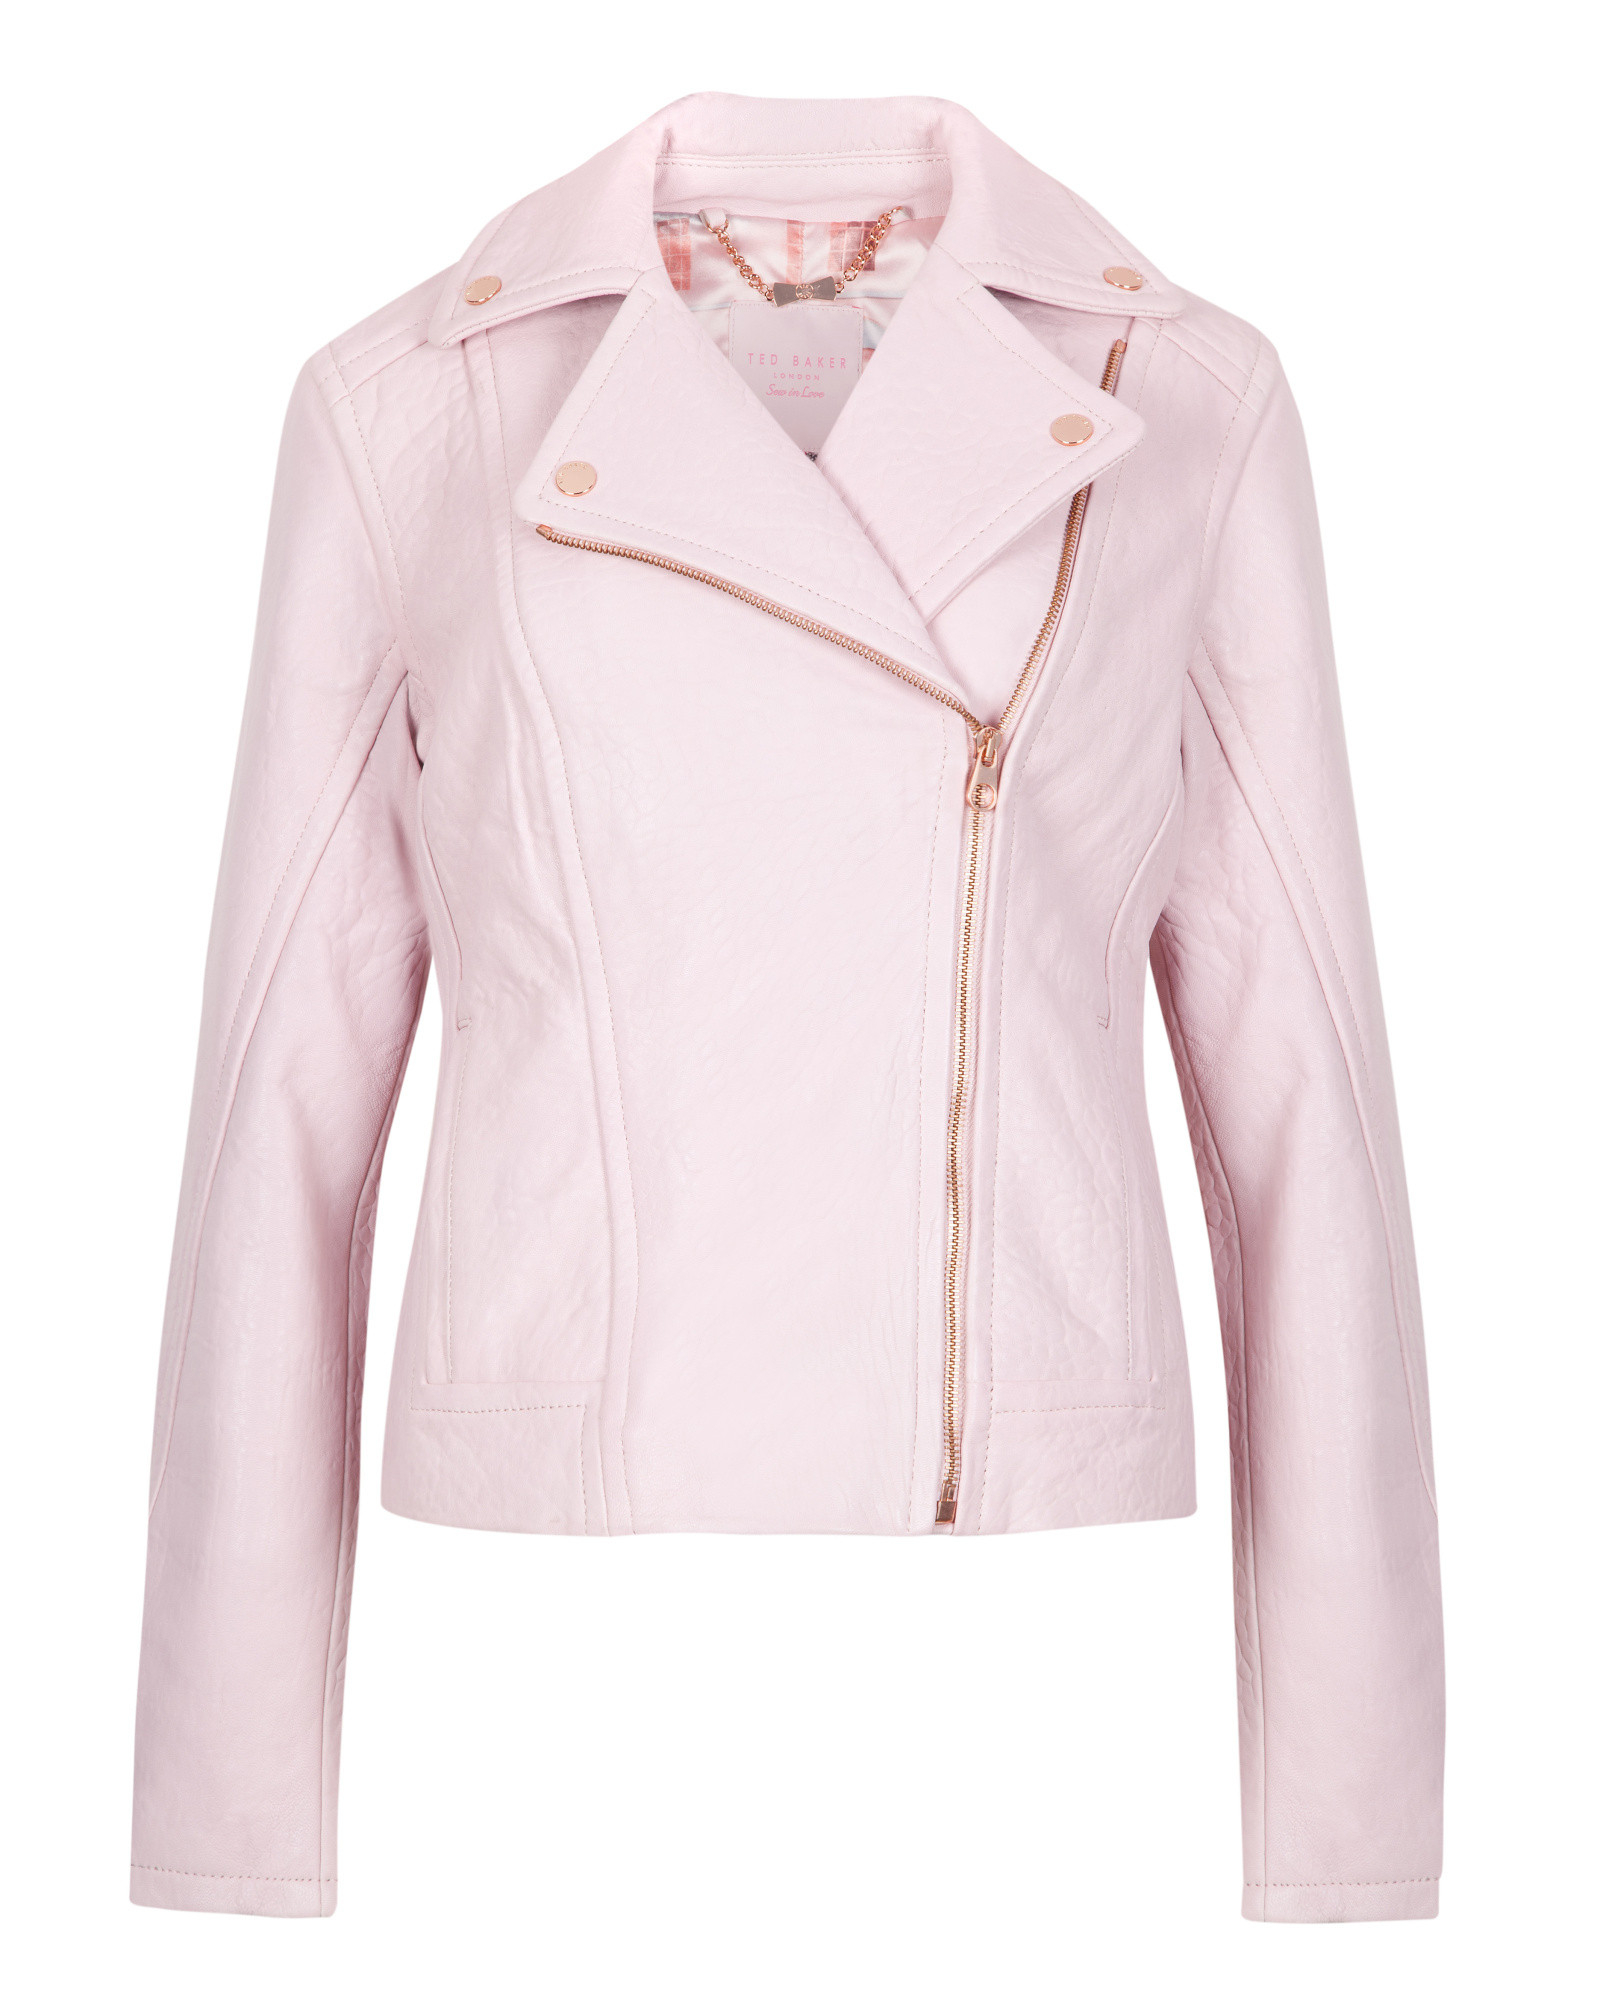 926fe8422 Ted Baker Coty Leather Biker Jacket in Pink - Lyst